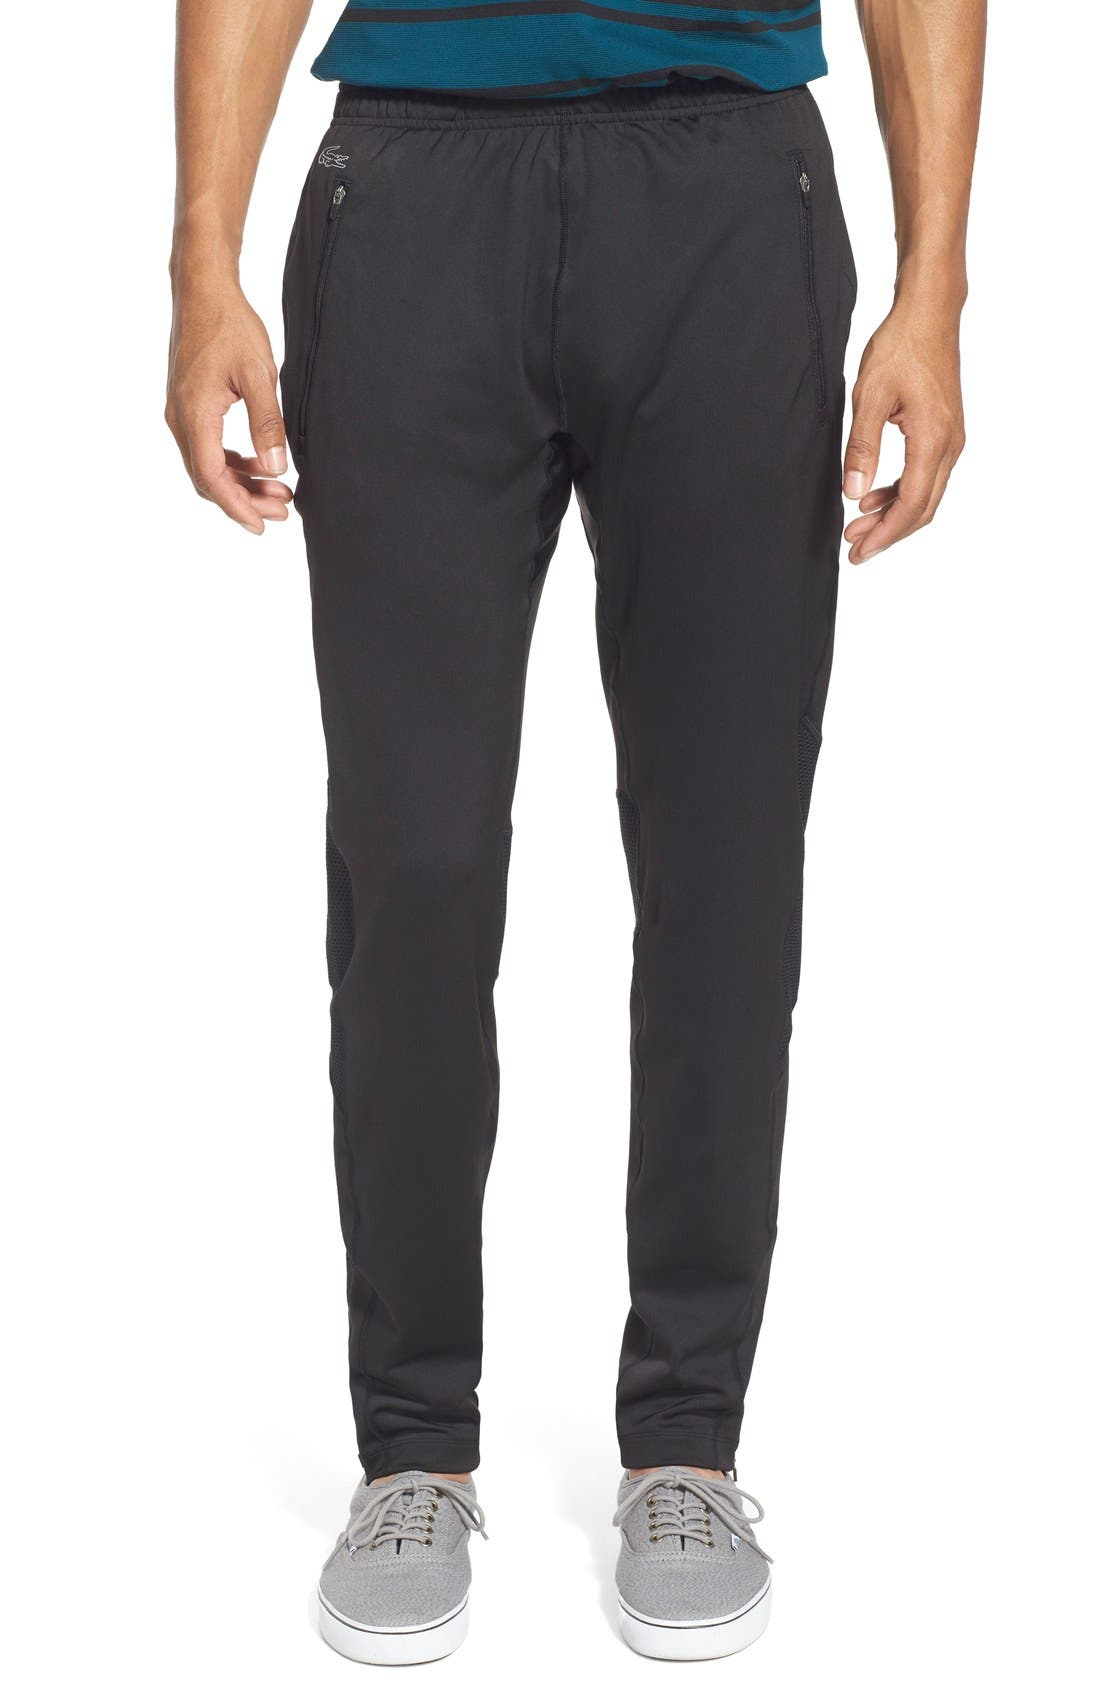 Lacoste 'Sport' Ultra Dry Stretch Performance Track Pants